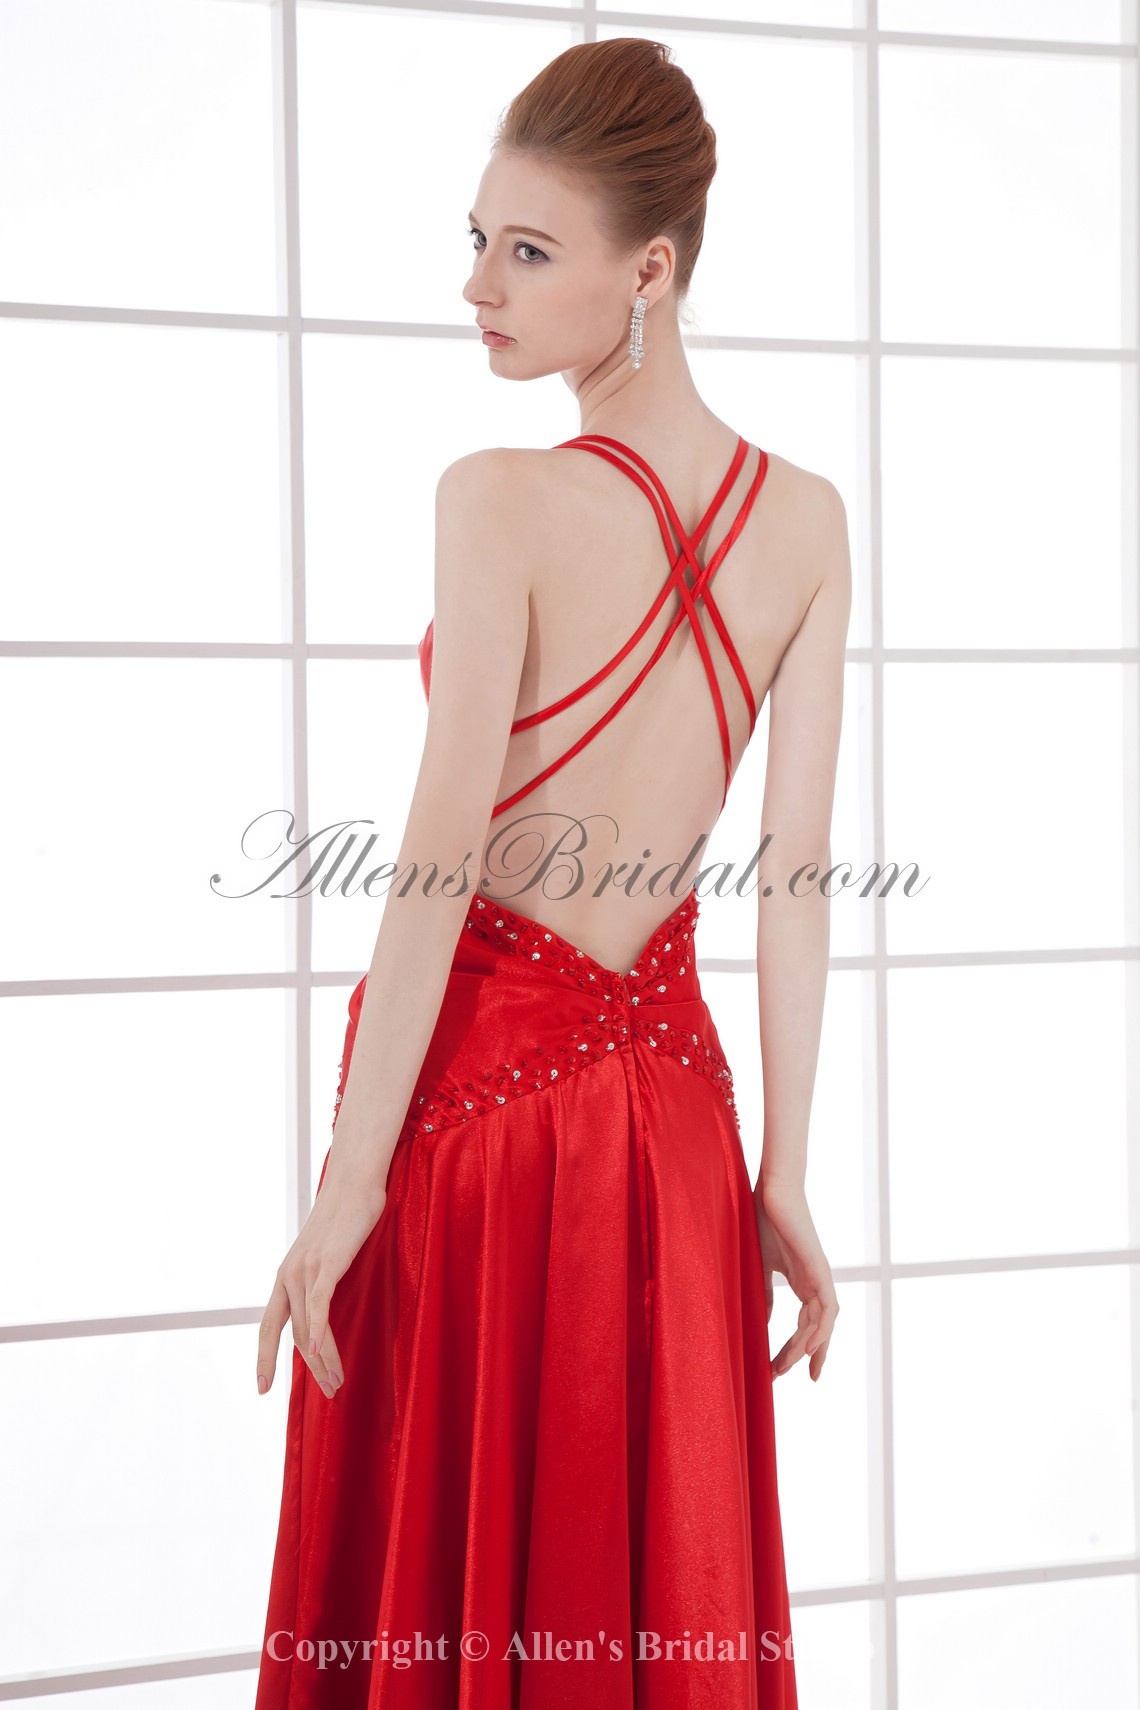 /72-573/satin-spaghetti-neckline-a-line-ankle-length-sequins-prom-dress.jpg